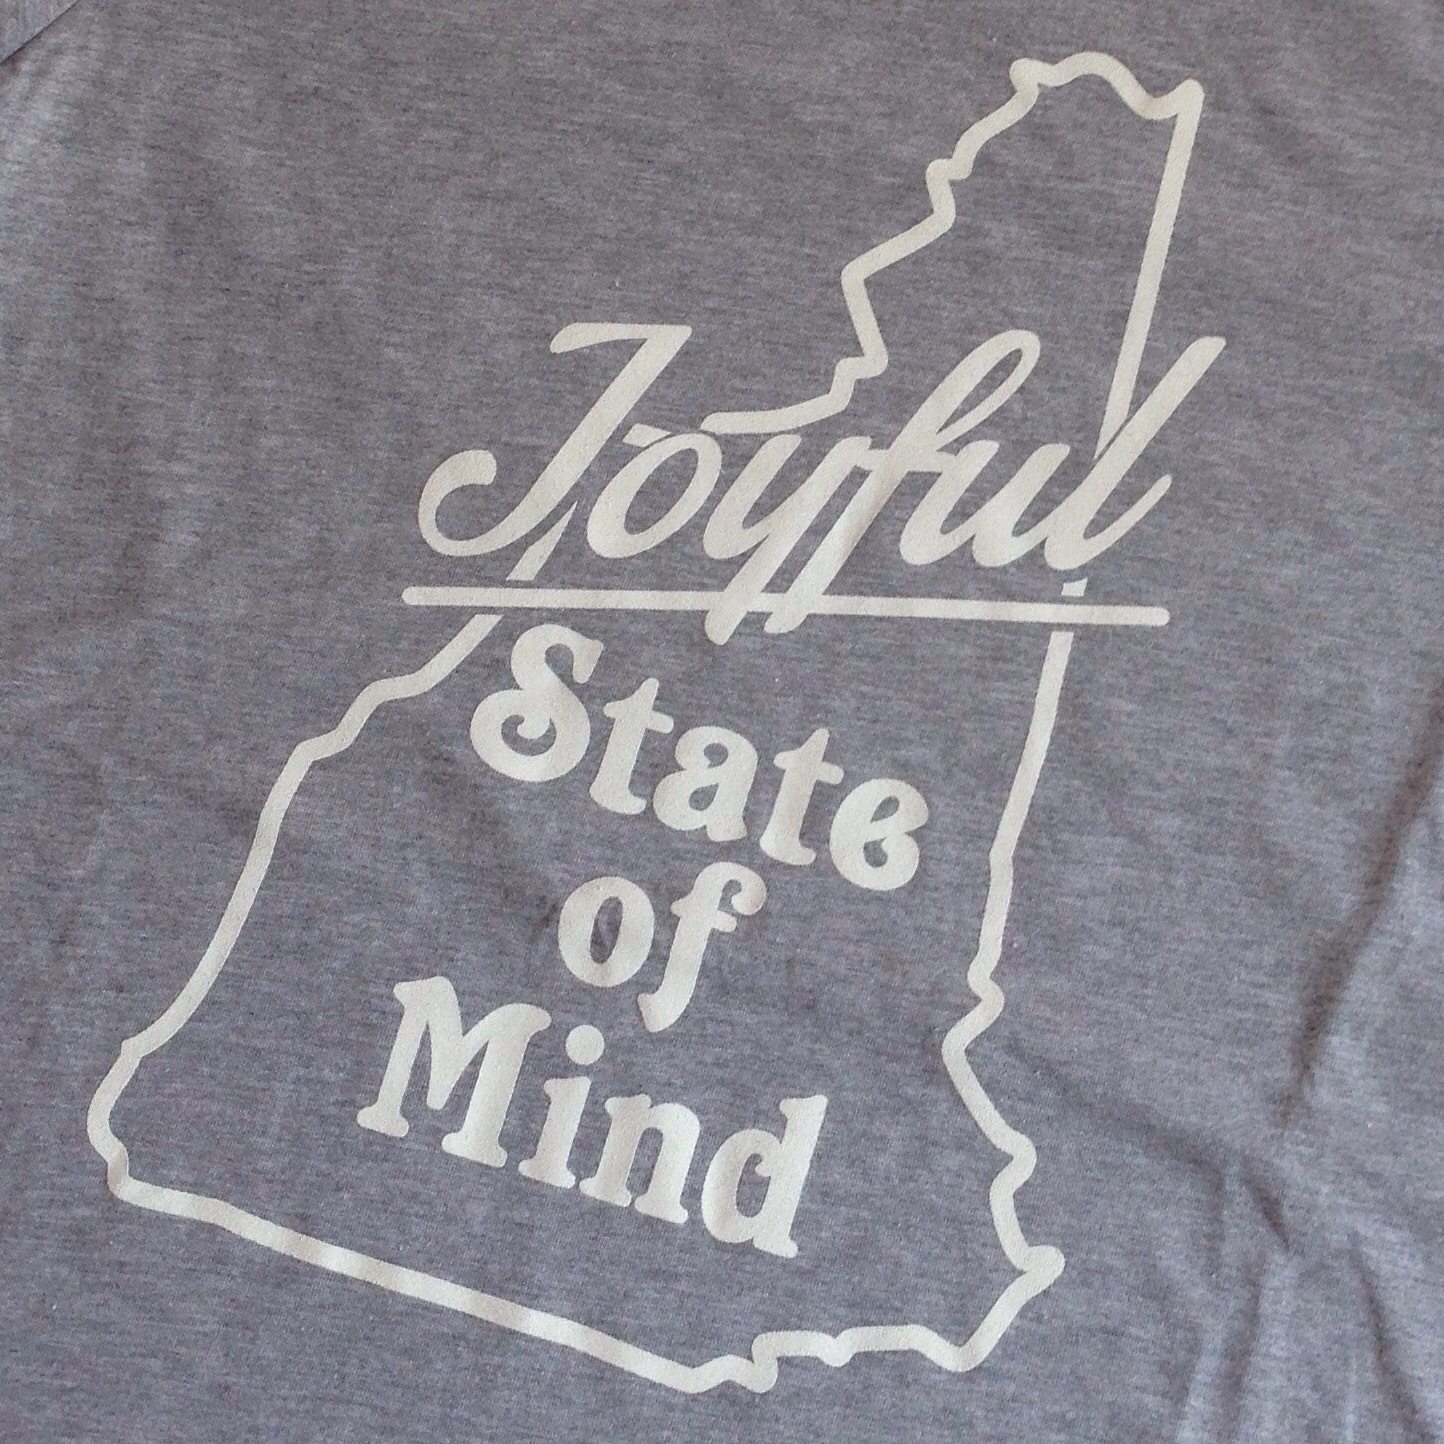 Joyful State of Mind, representing the 603